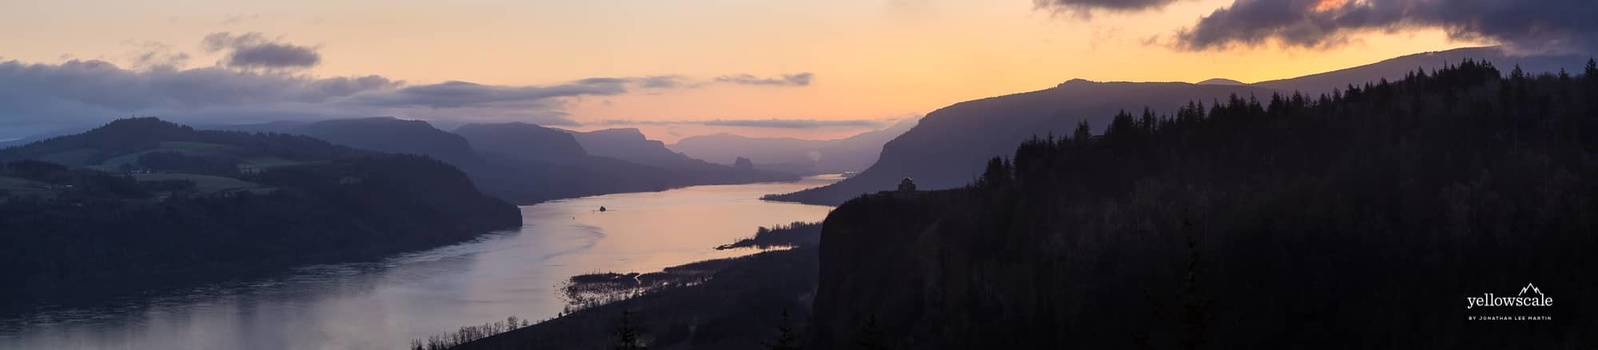 Twilight over Columbia River Gorge, Oregon